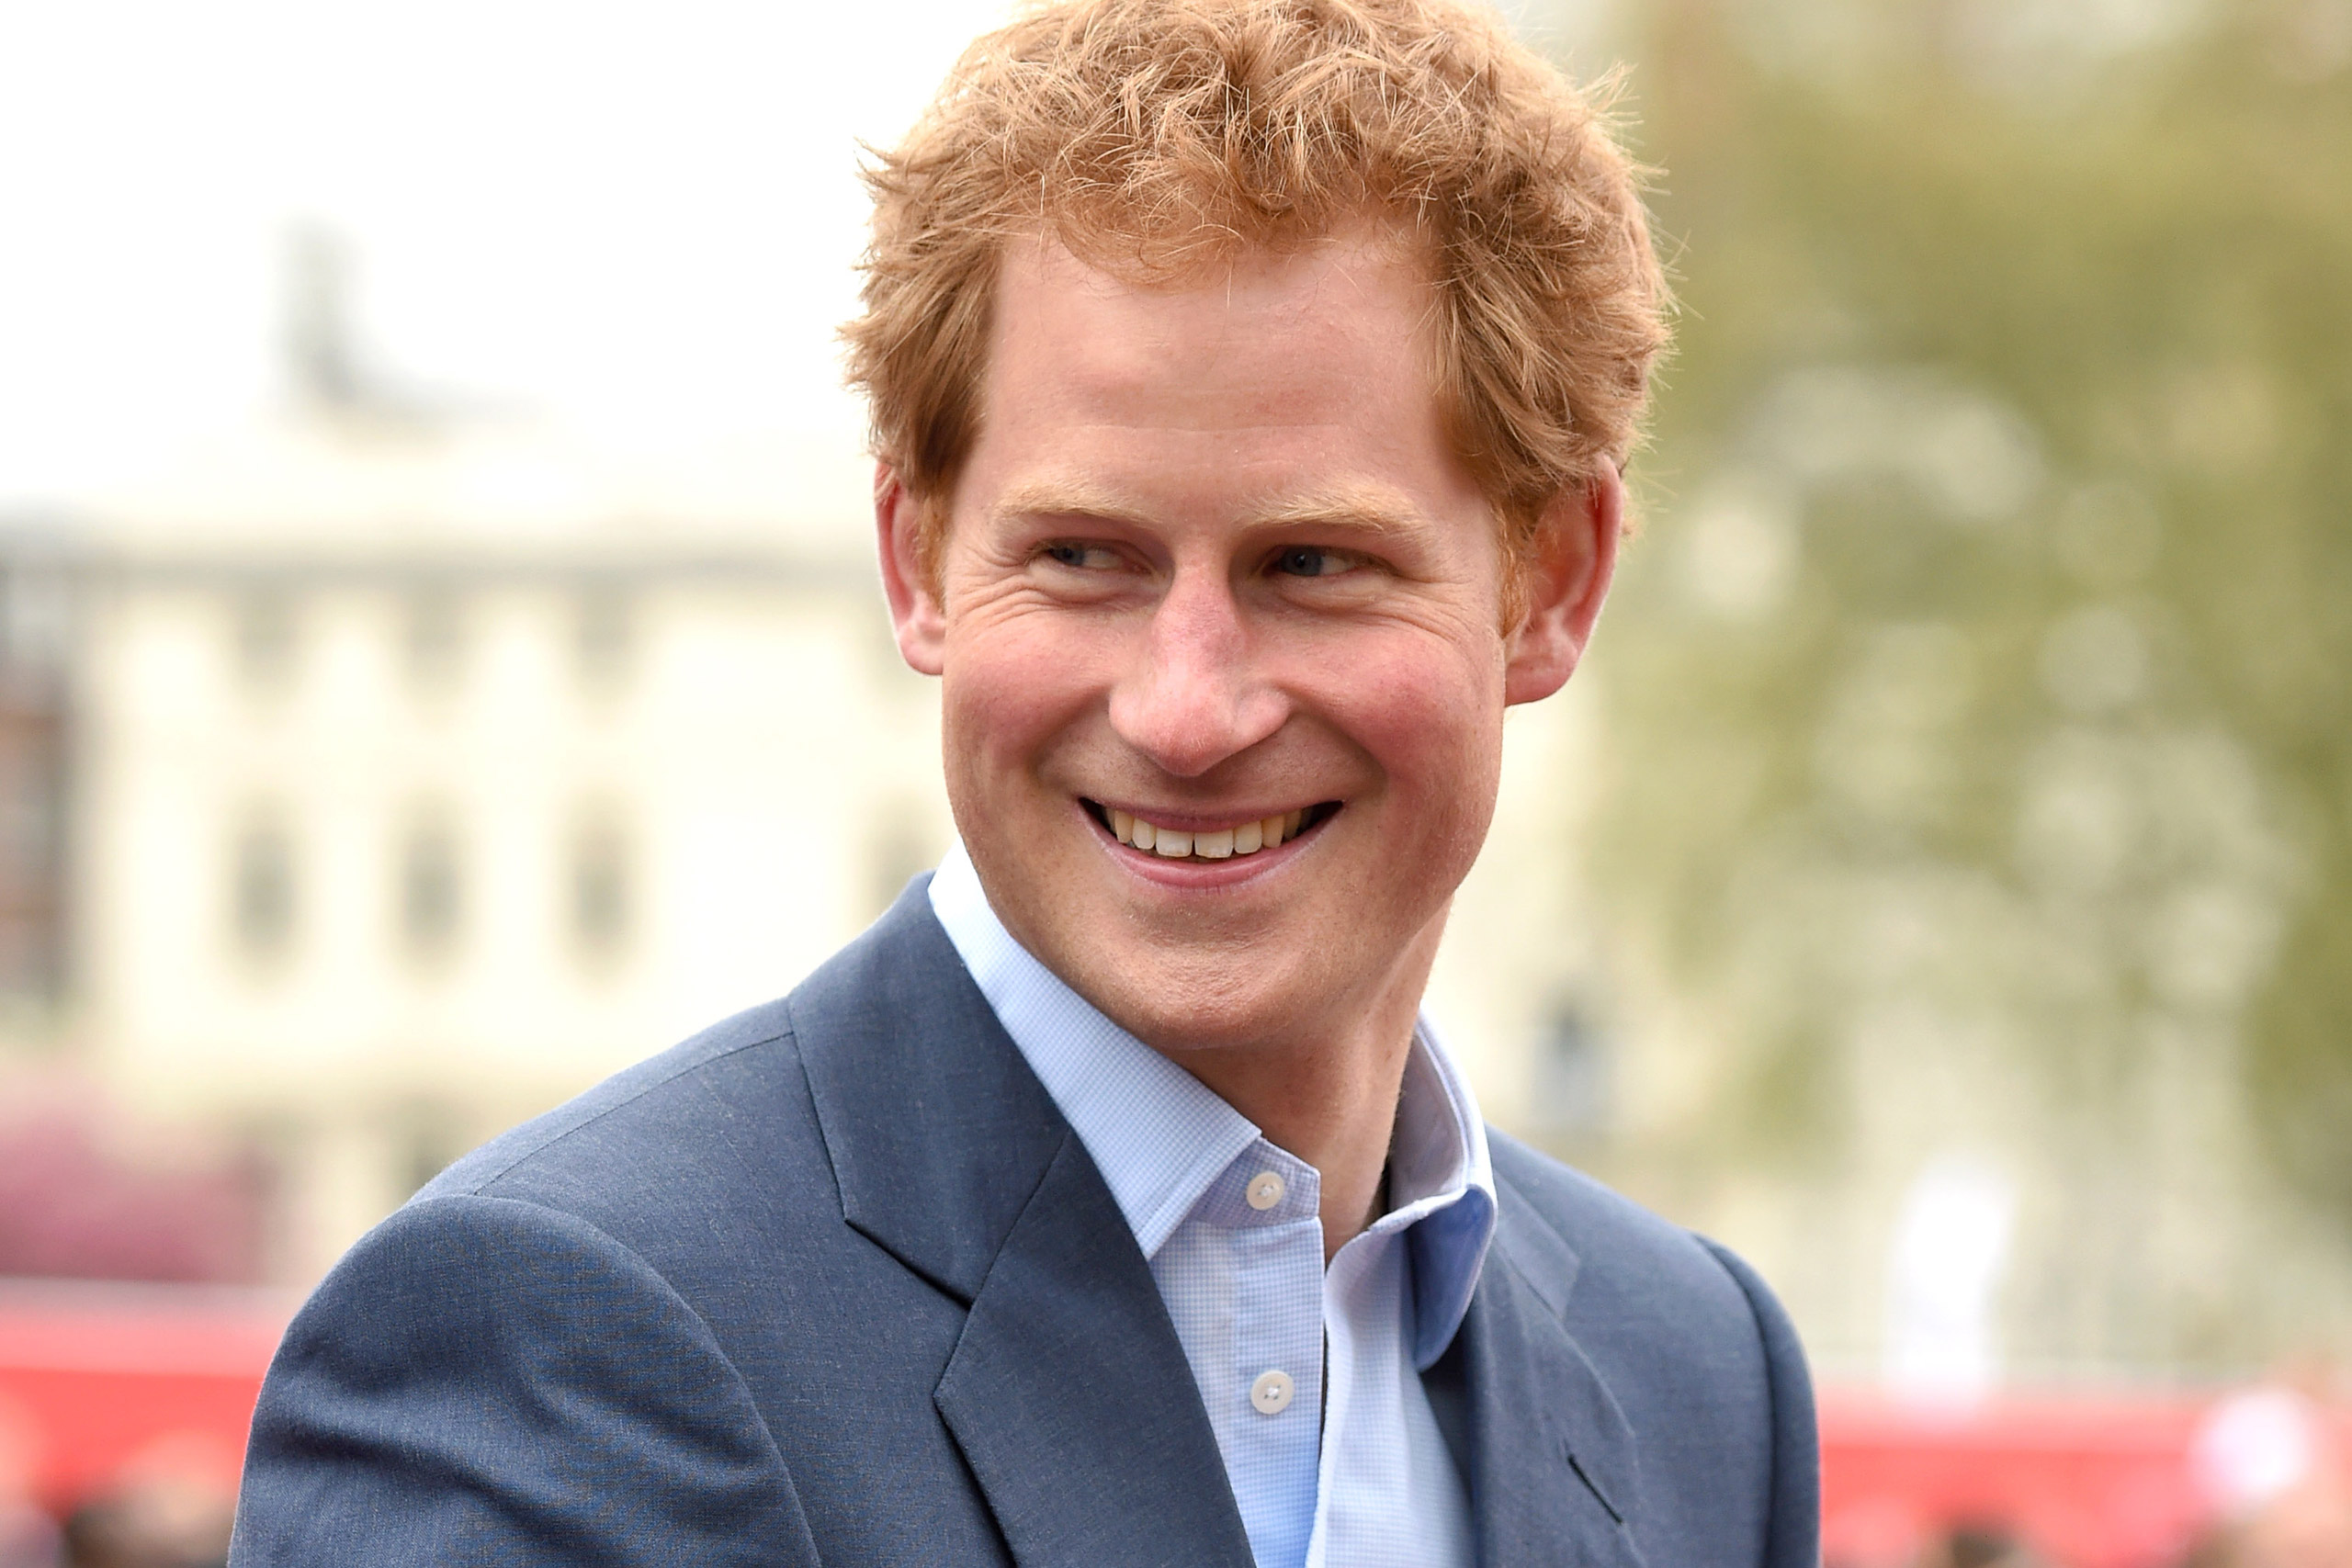 Prince Harry attends the London Marathon on April 26, 2015 in London.